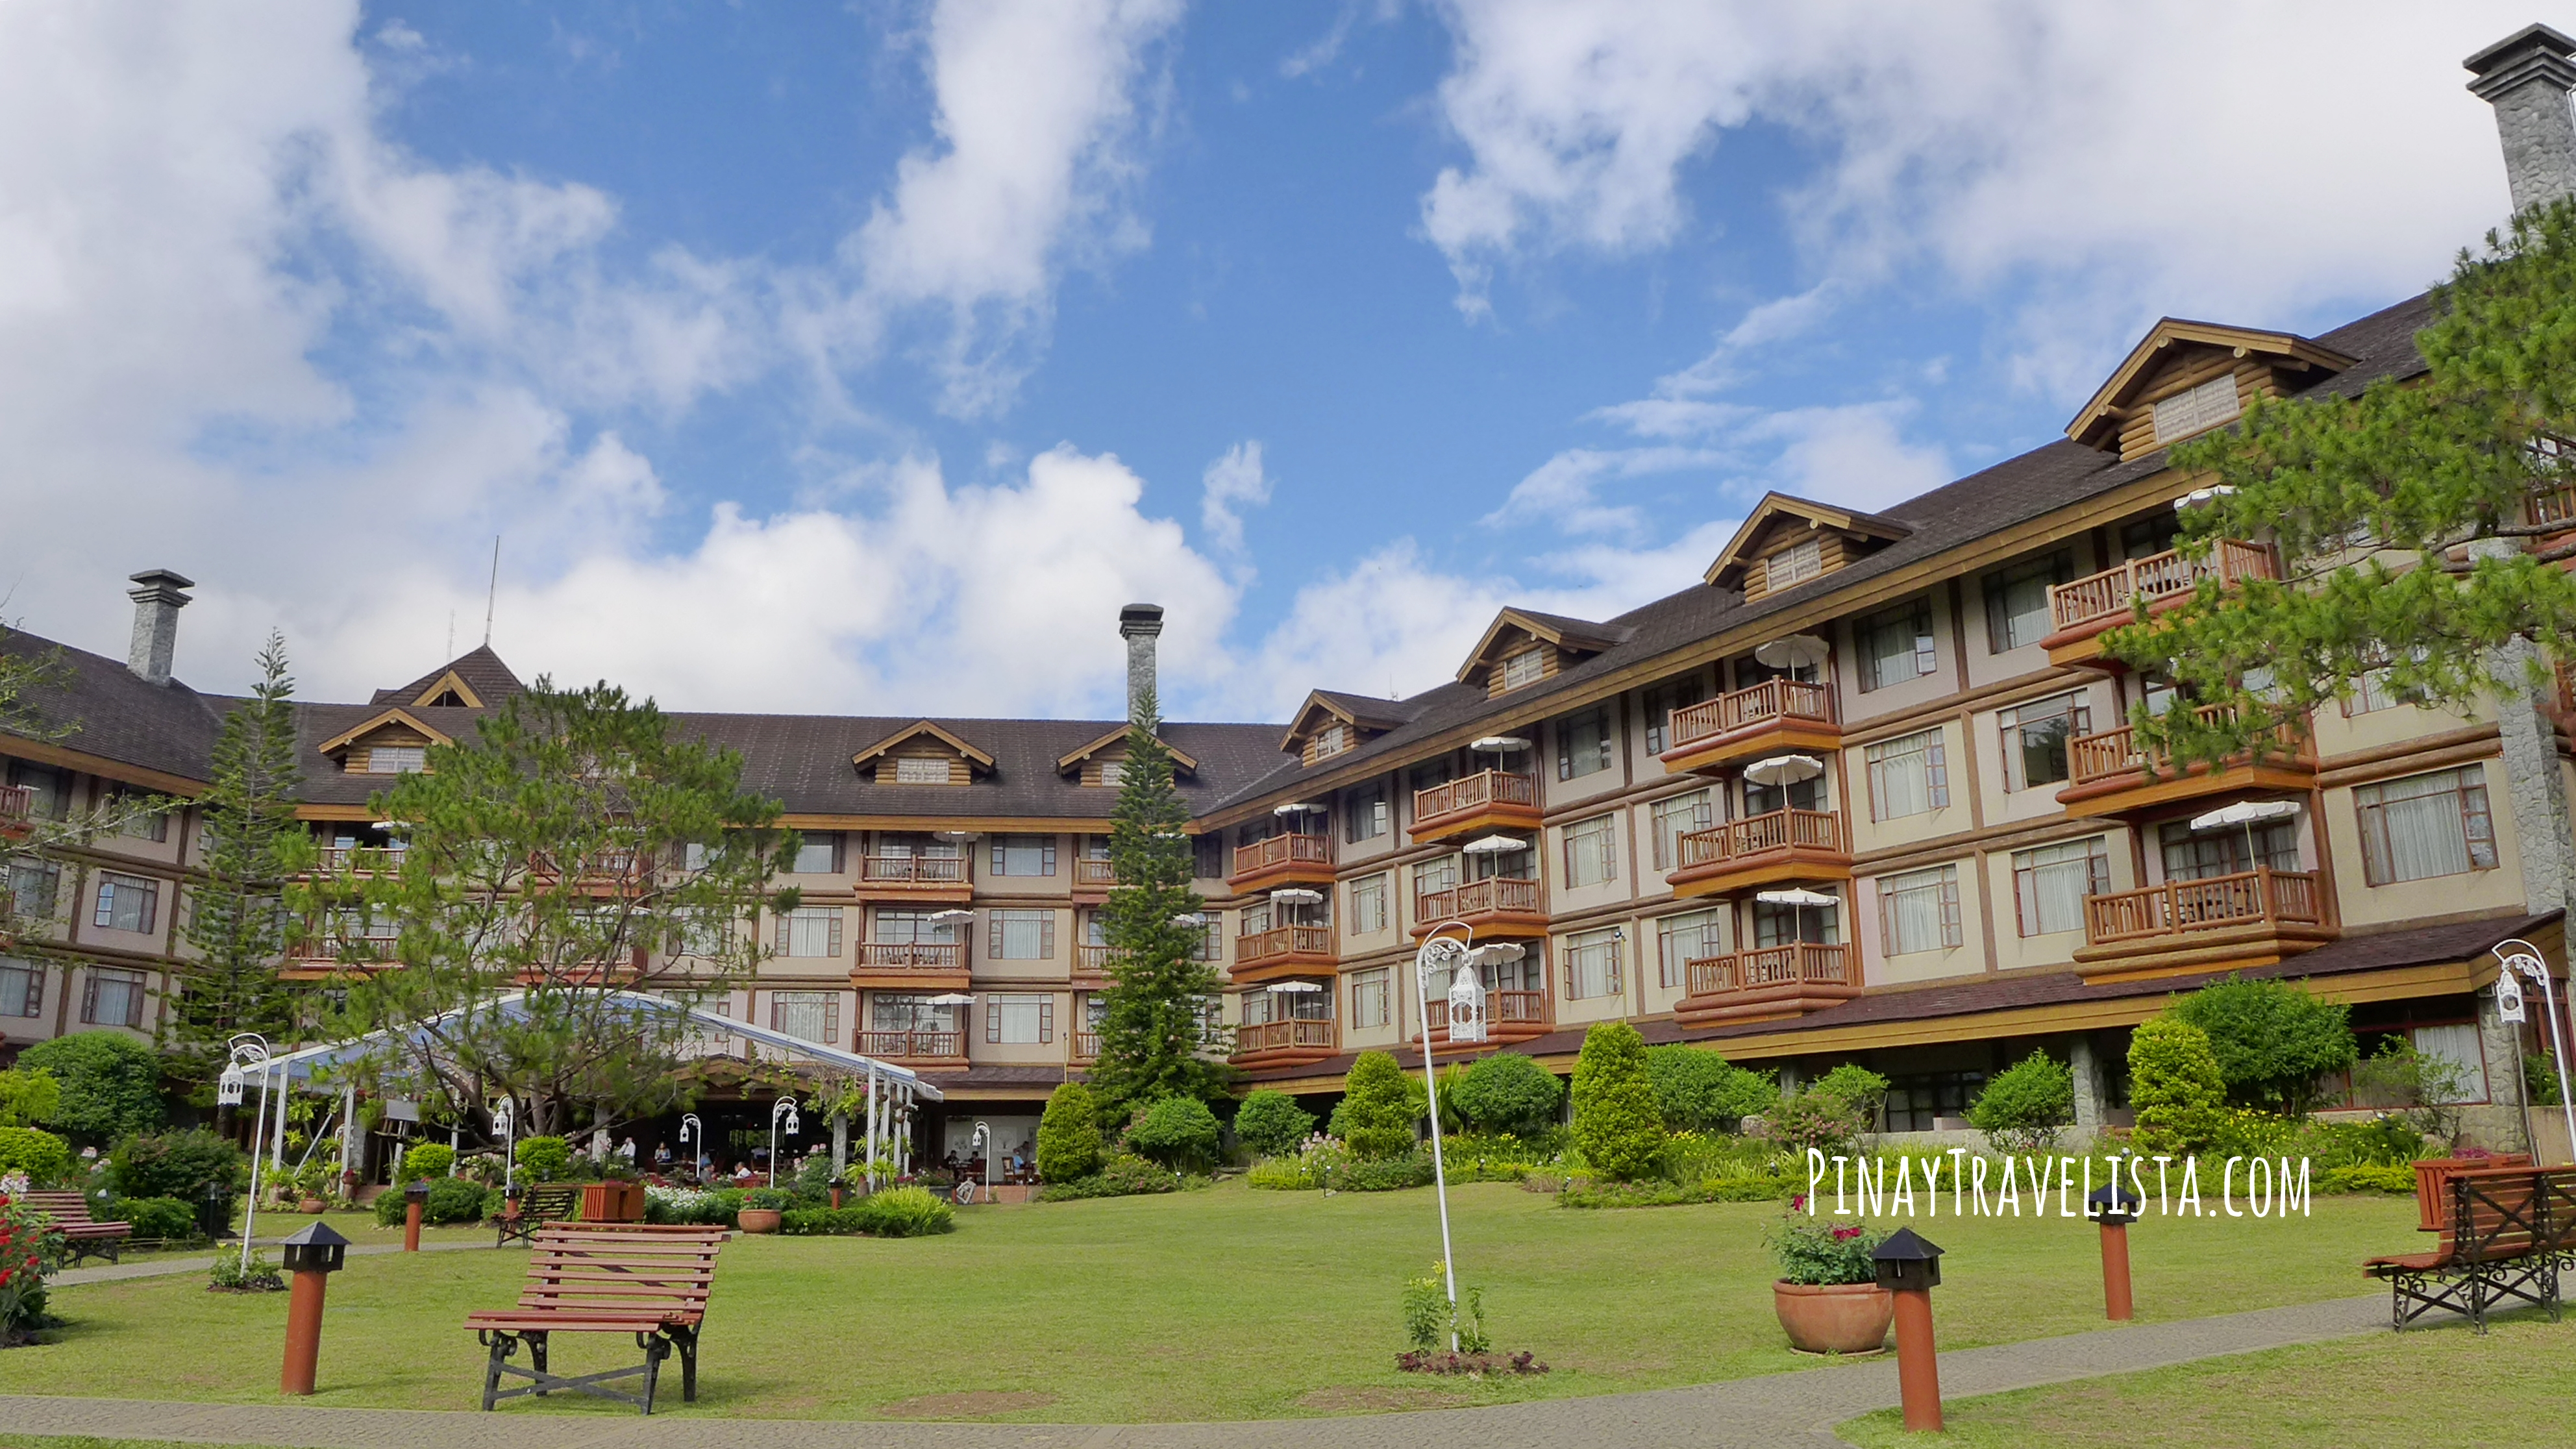 Not Yet Sure On Where To Stay For The Rest Of Our Baguio City Trip Manor At Camp John Hay Was Gest Surprise Located Major Tourism And